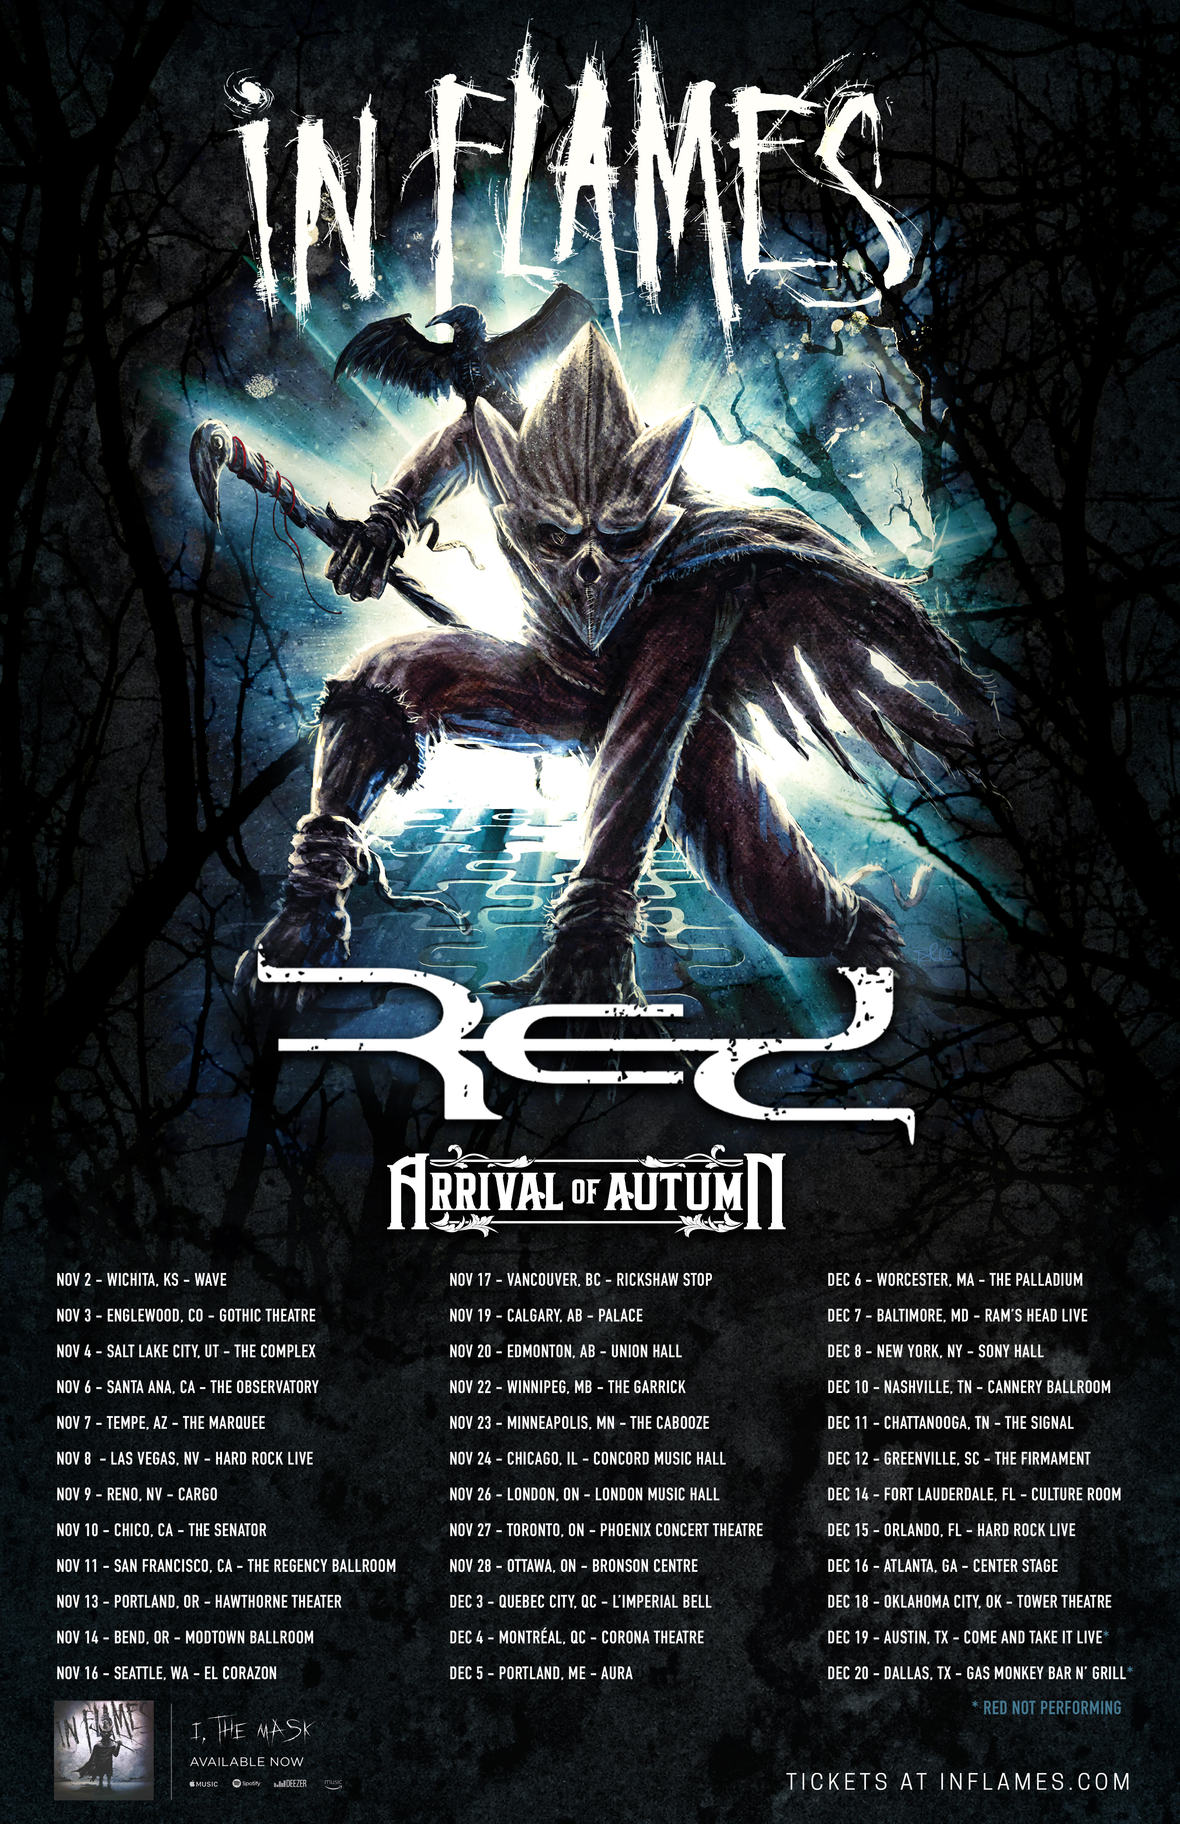 ARRIVAL OF AUTUMN Announces North American Tour with IN FLAMES And RED